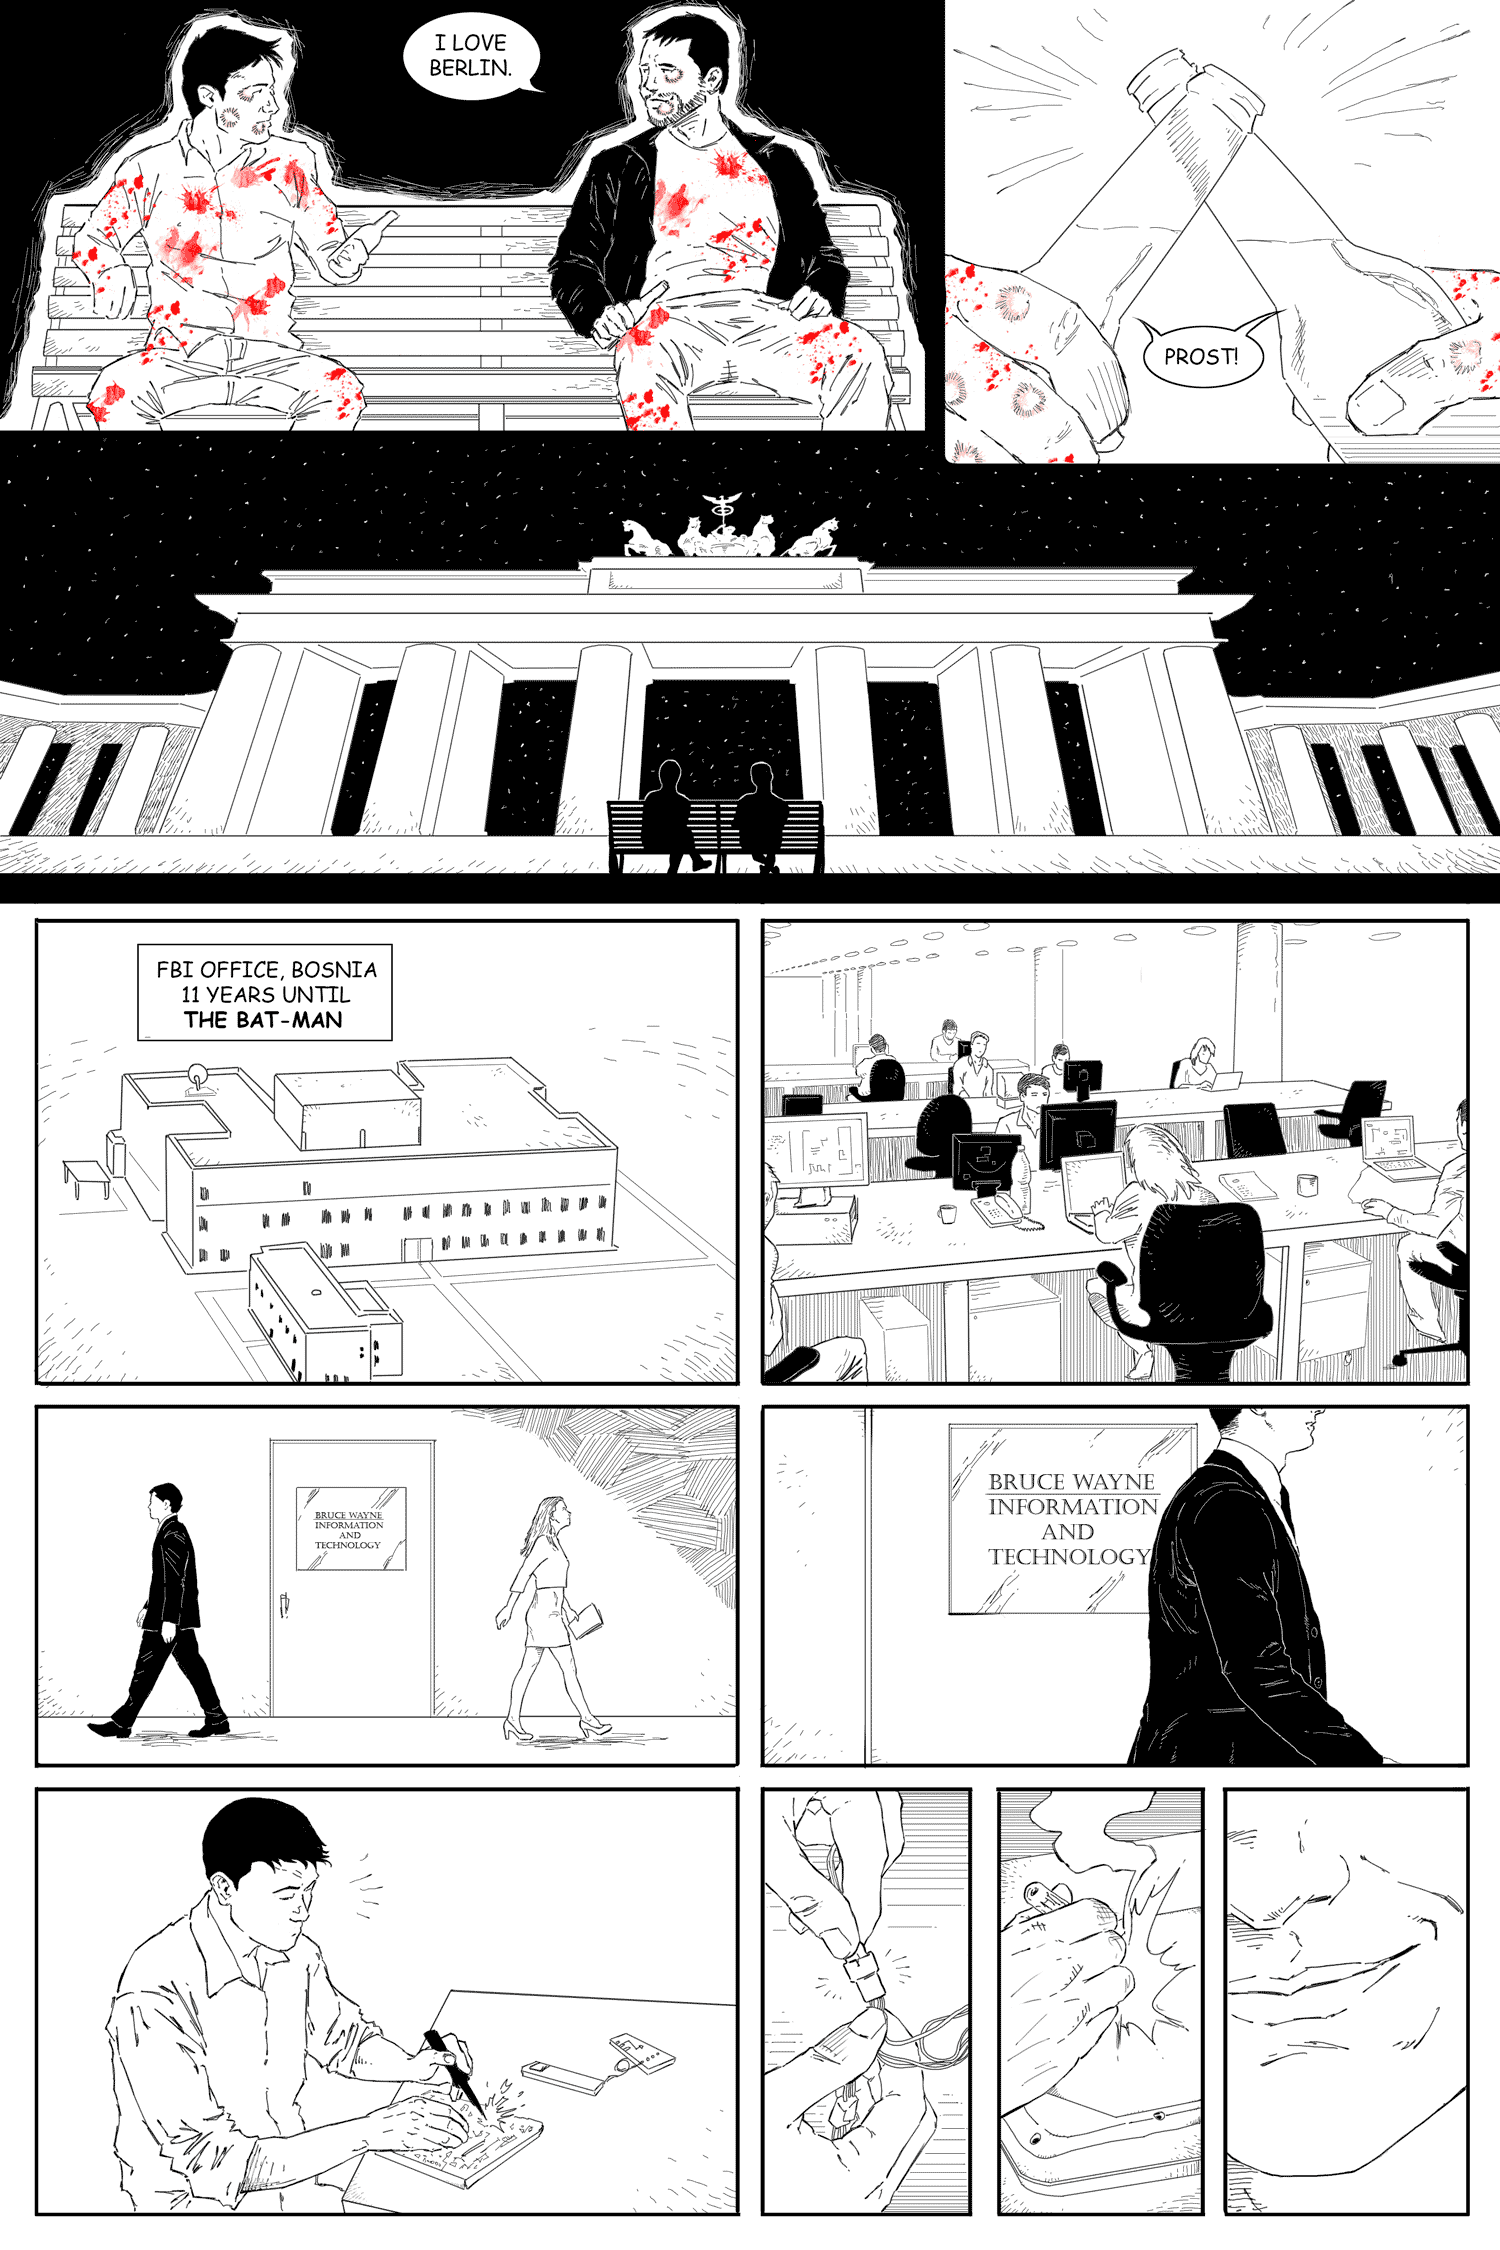 3page6